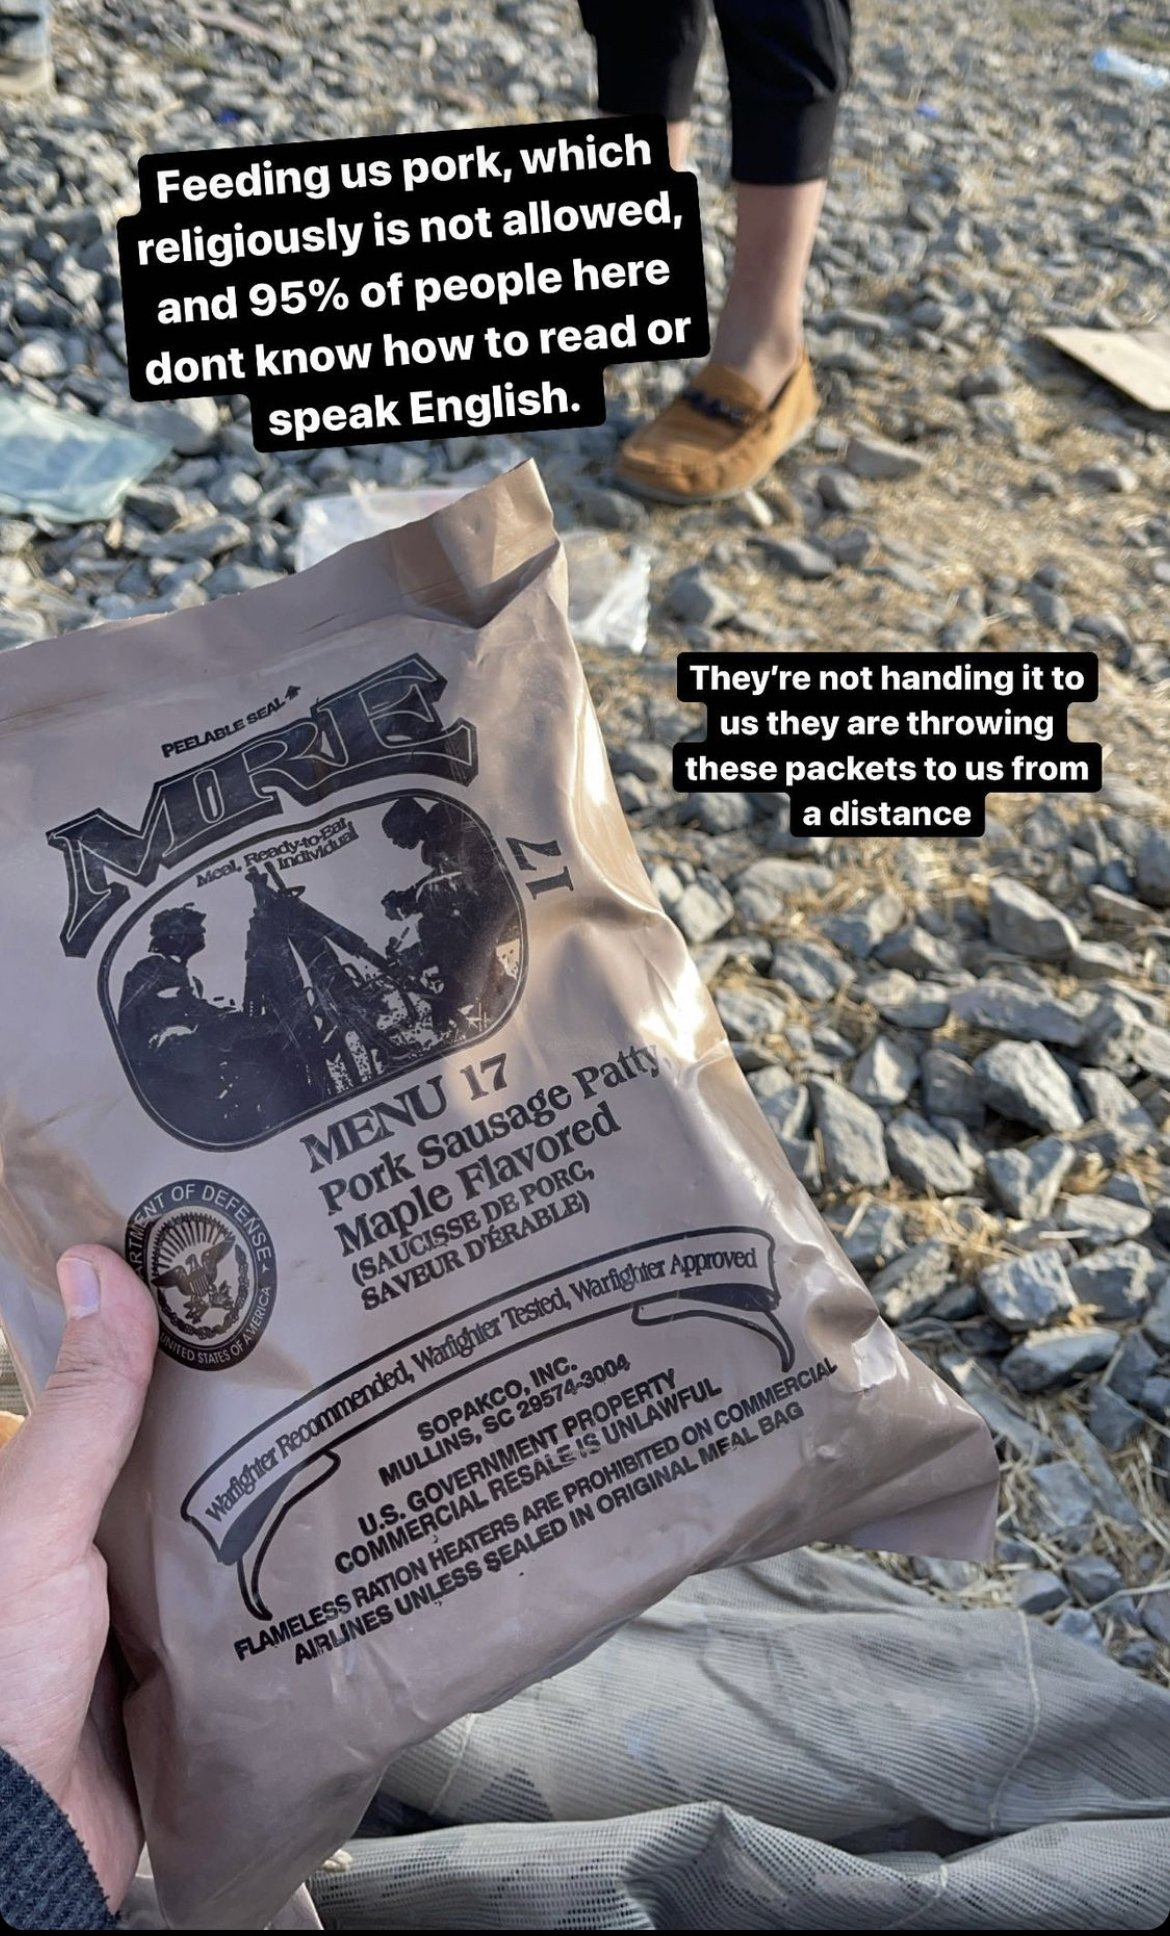 This Aug. 21, 2021 screenshot of an Instagram story shows a pork sausage package distributed by U.S. soldiers at the airport in Kabul, Afghanistan. (Photo: Instagram/@zf326)